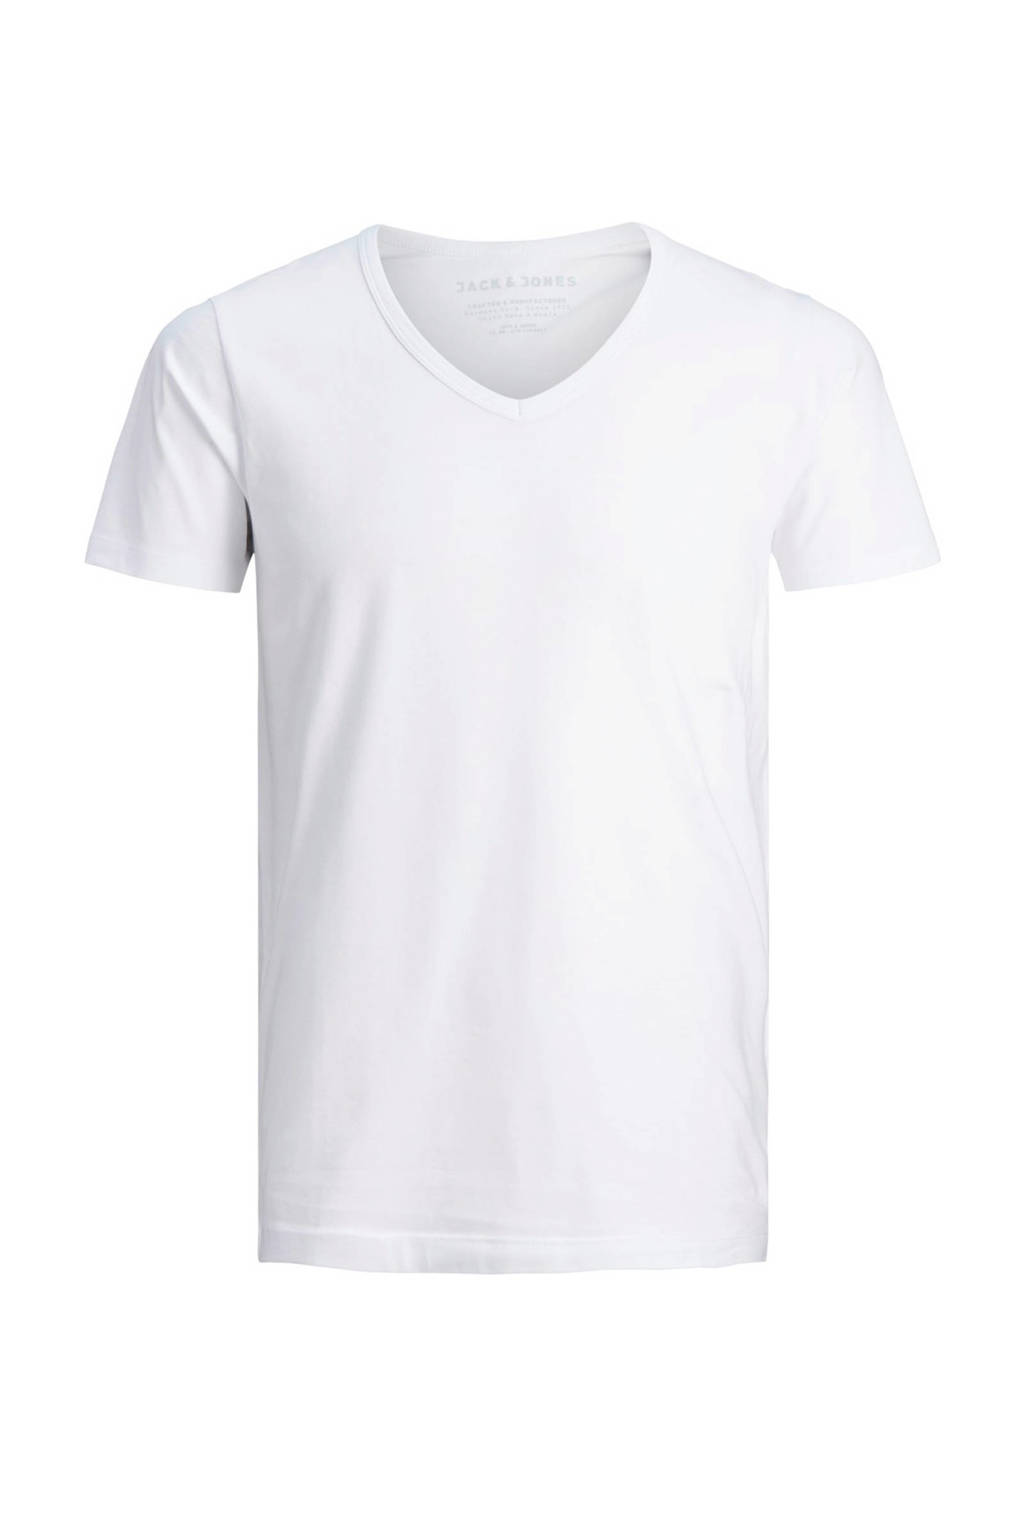 Jack & Jones T-shirt wit, Wit